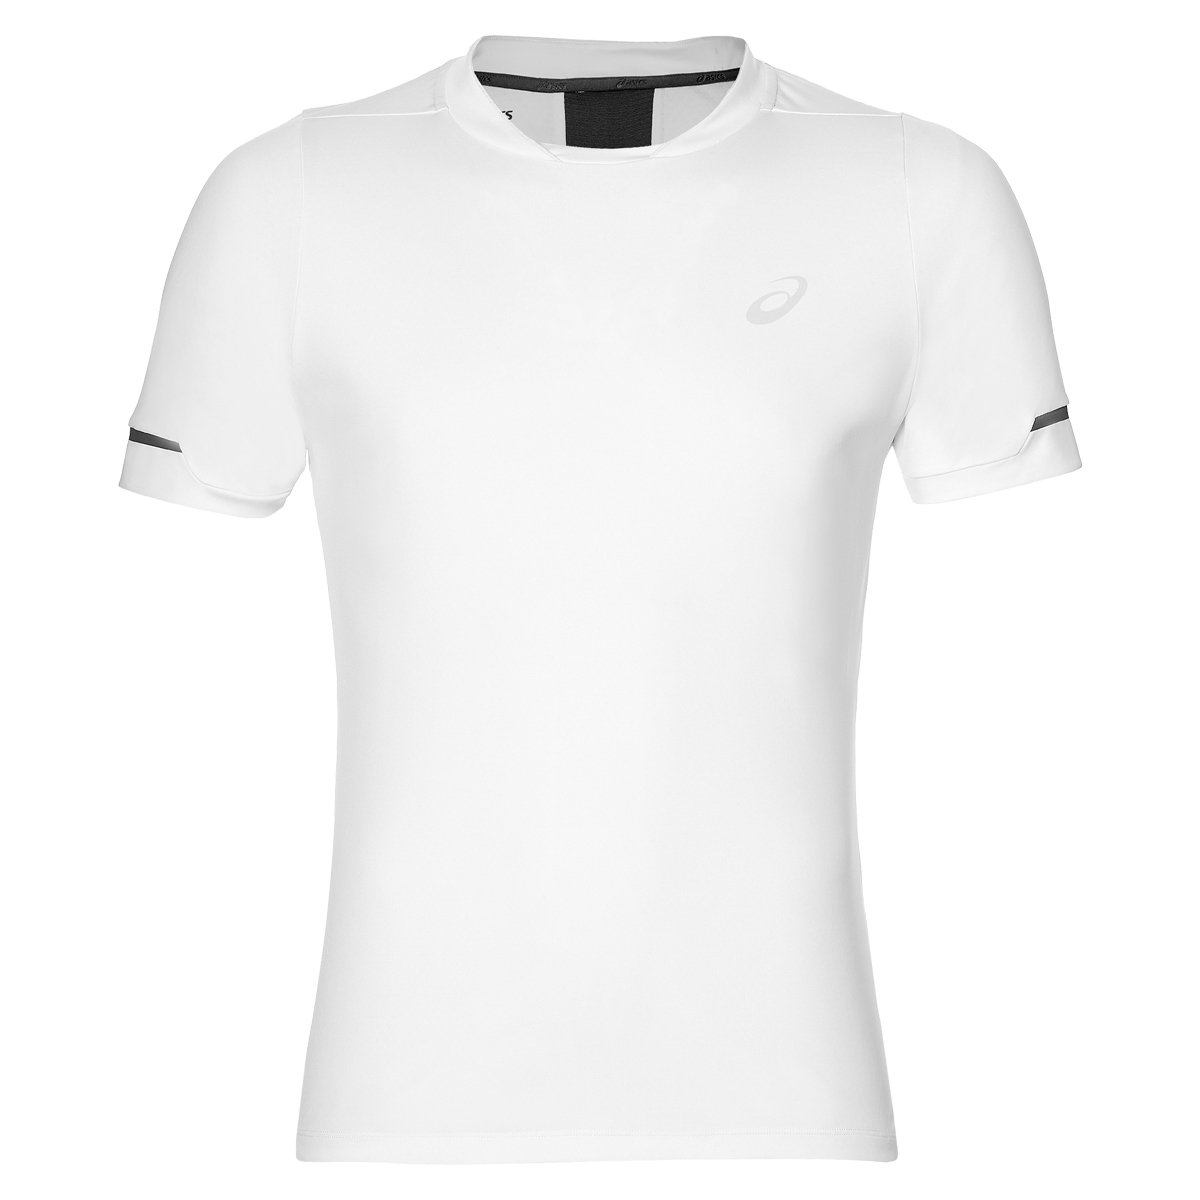 ASICS Herren Athlete Shortsleeve Top Men T-Shirts, weiß, S